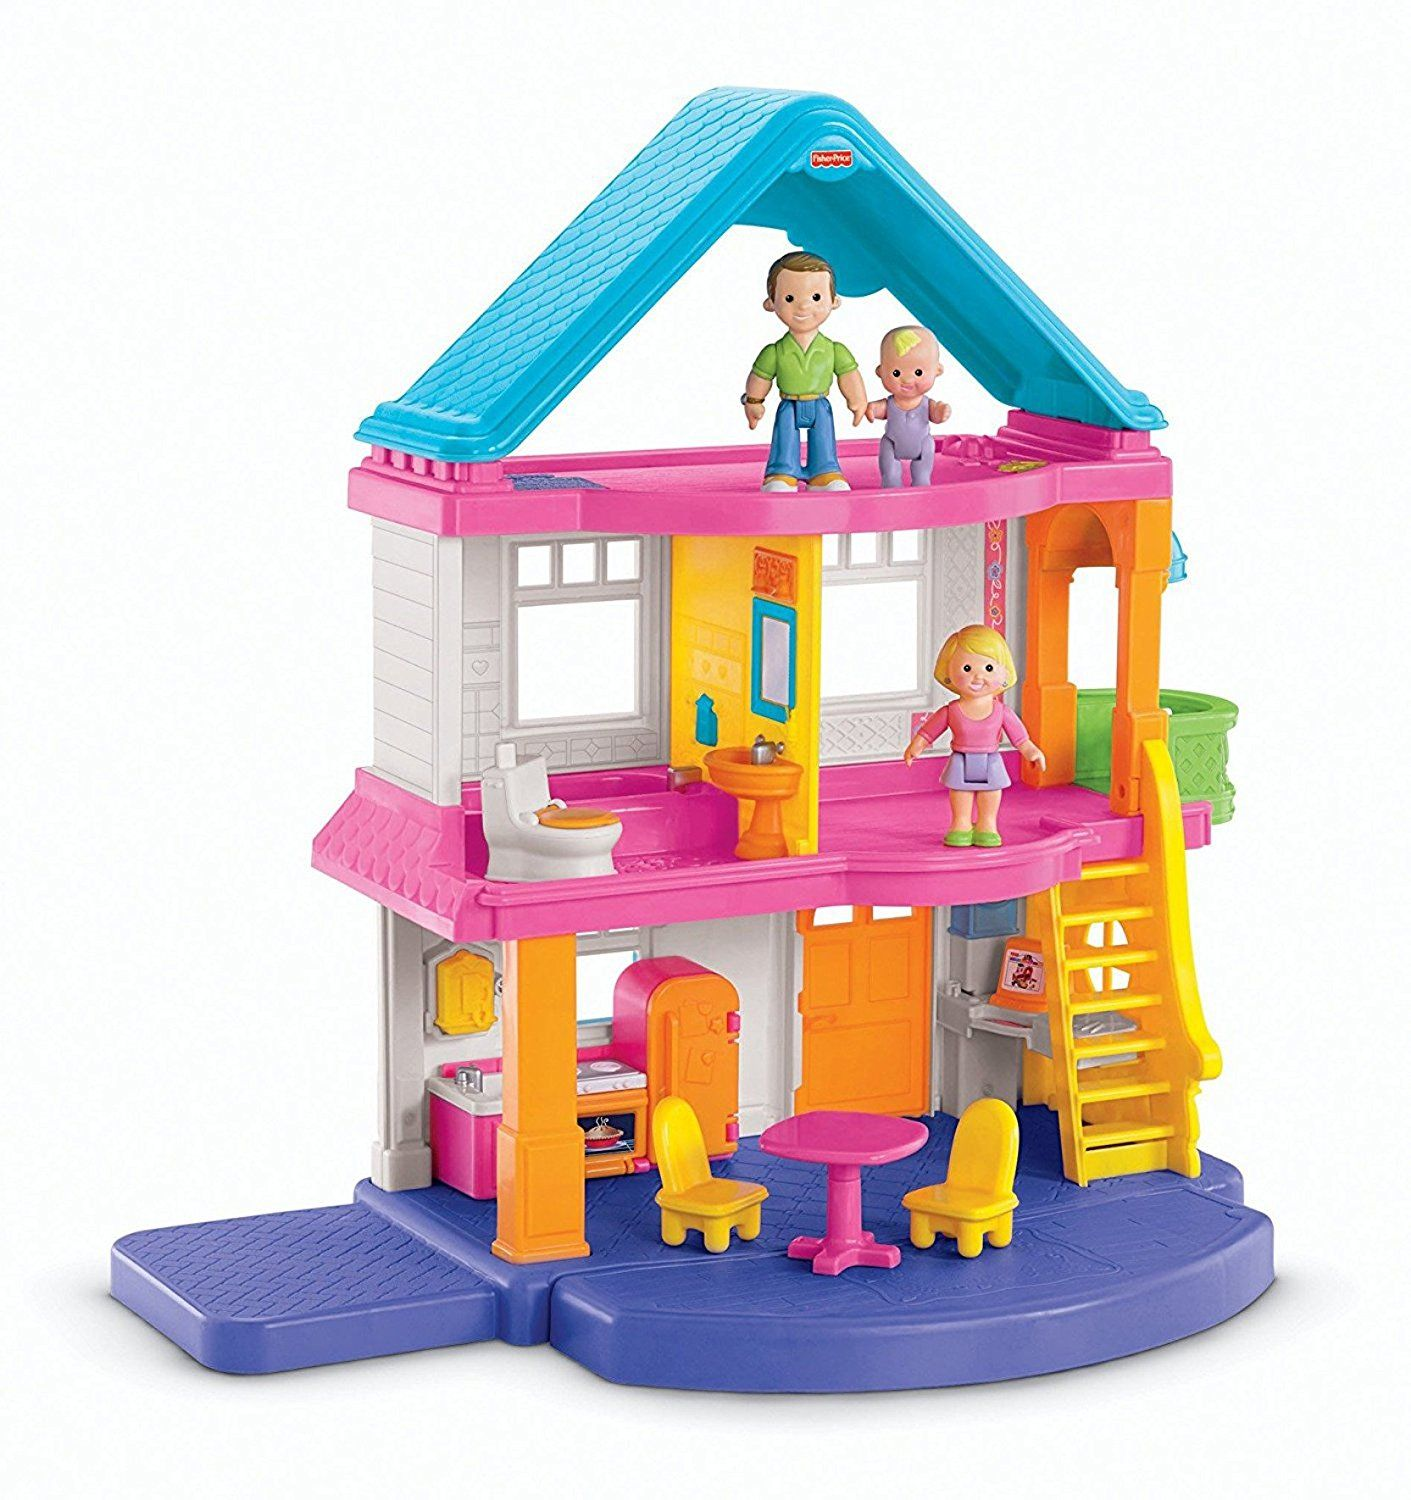 Amazon Fisher Price My First Dollhouse Playset Toys & Games